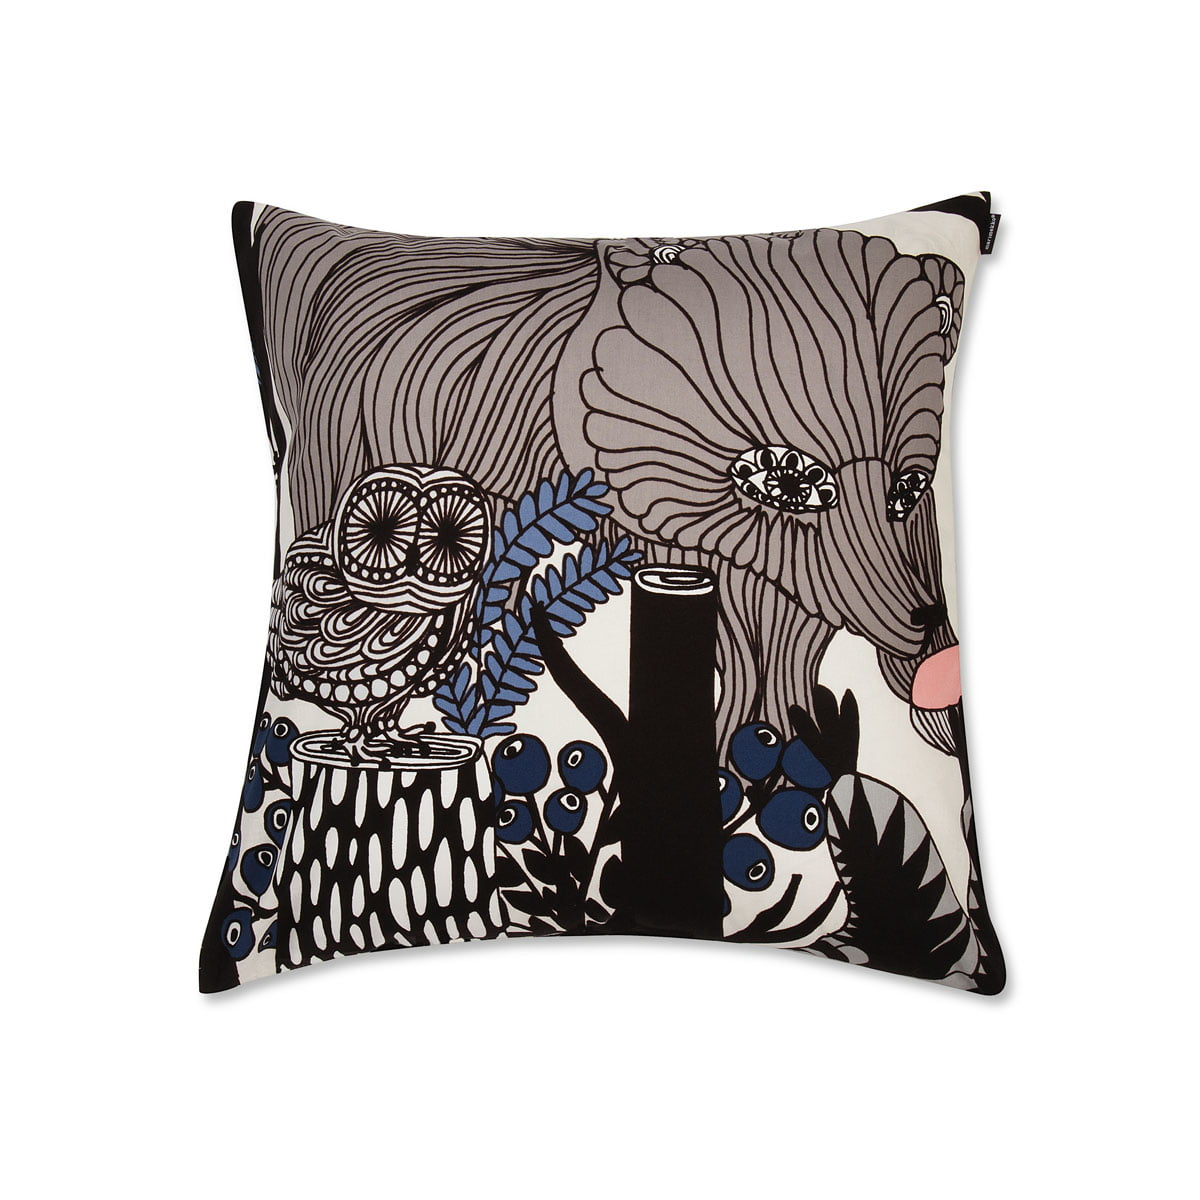 marimekko veljekset kissenbezug 50 x 50 cm mehrfarbig. Black Bedroom Furniture Sets. Home Design Ideas